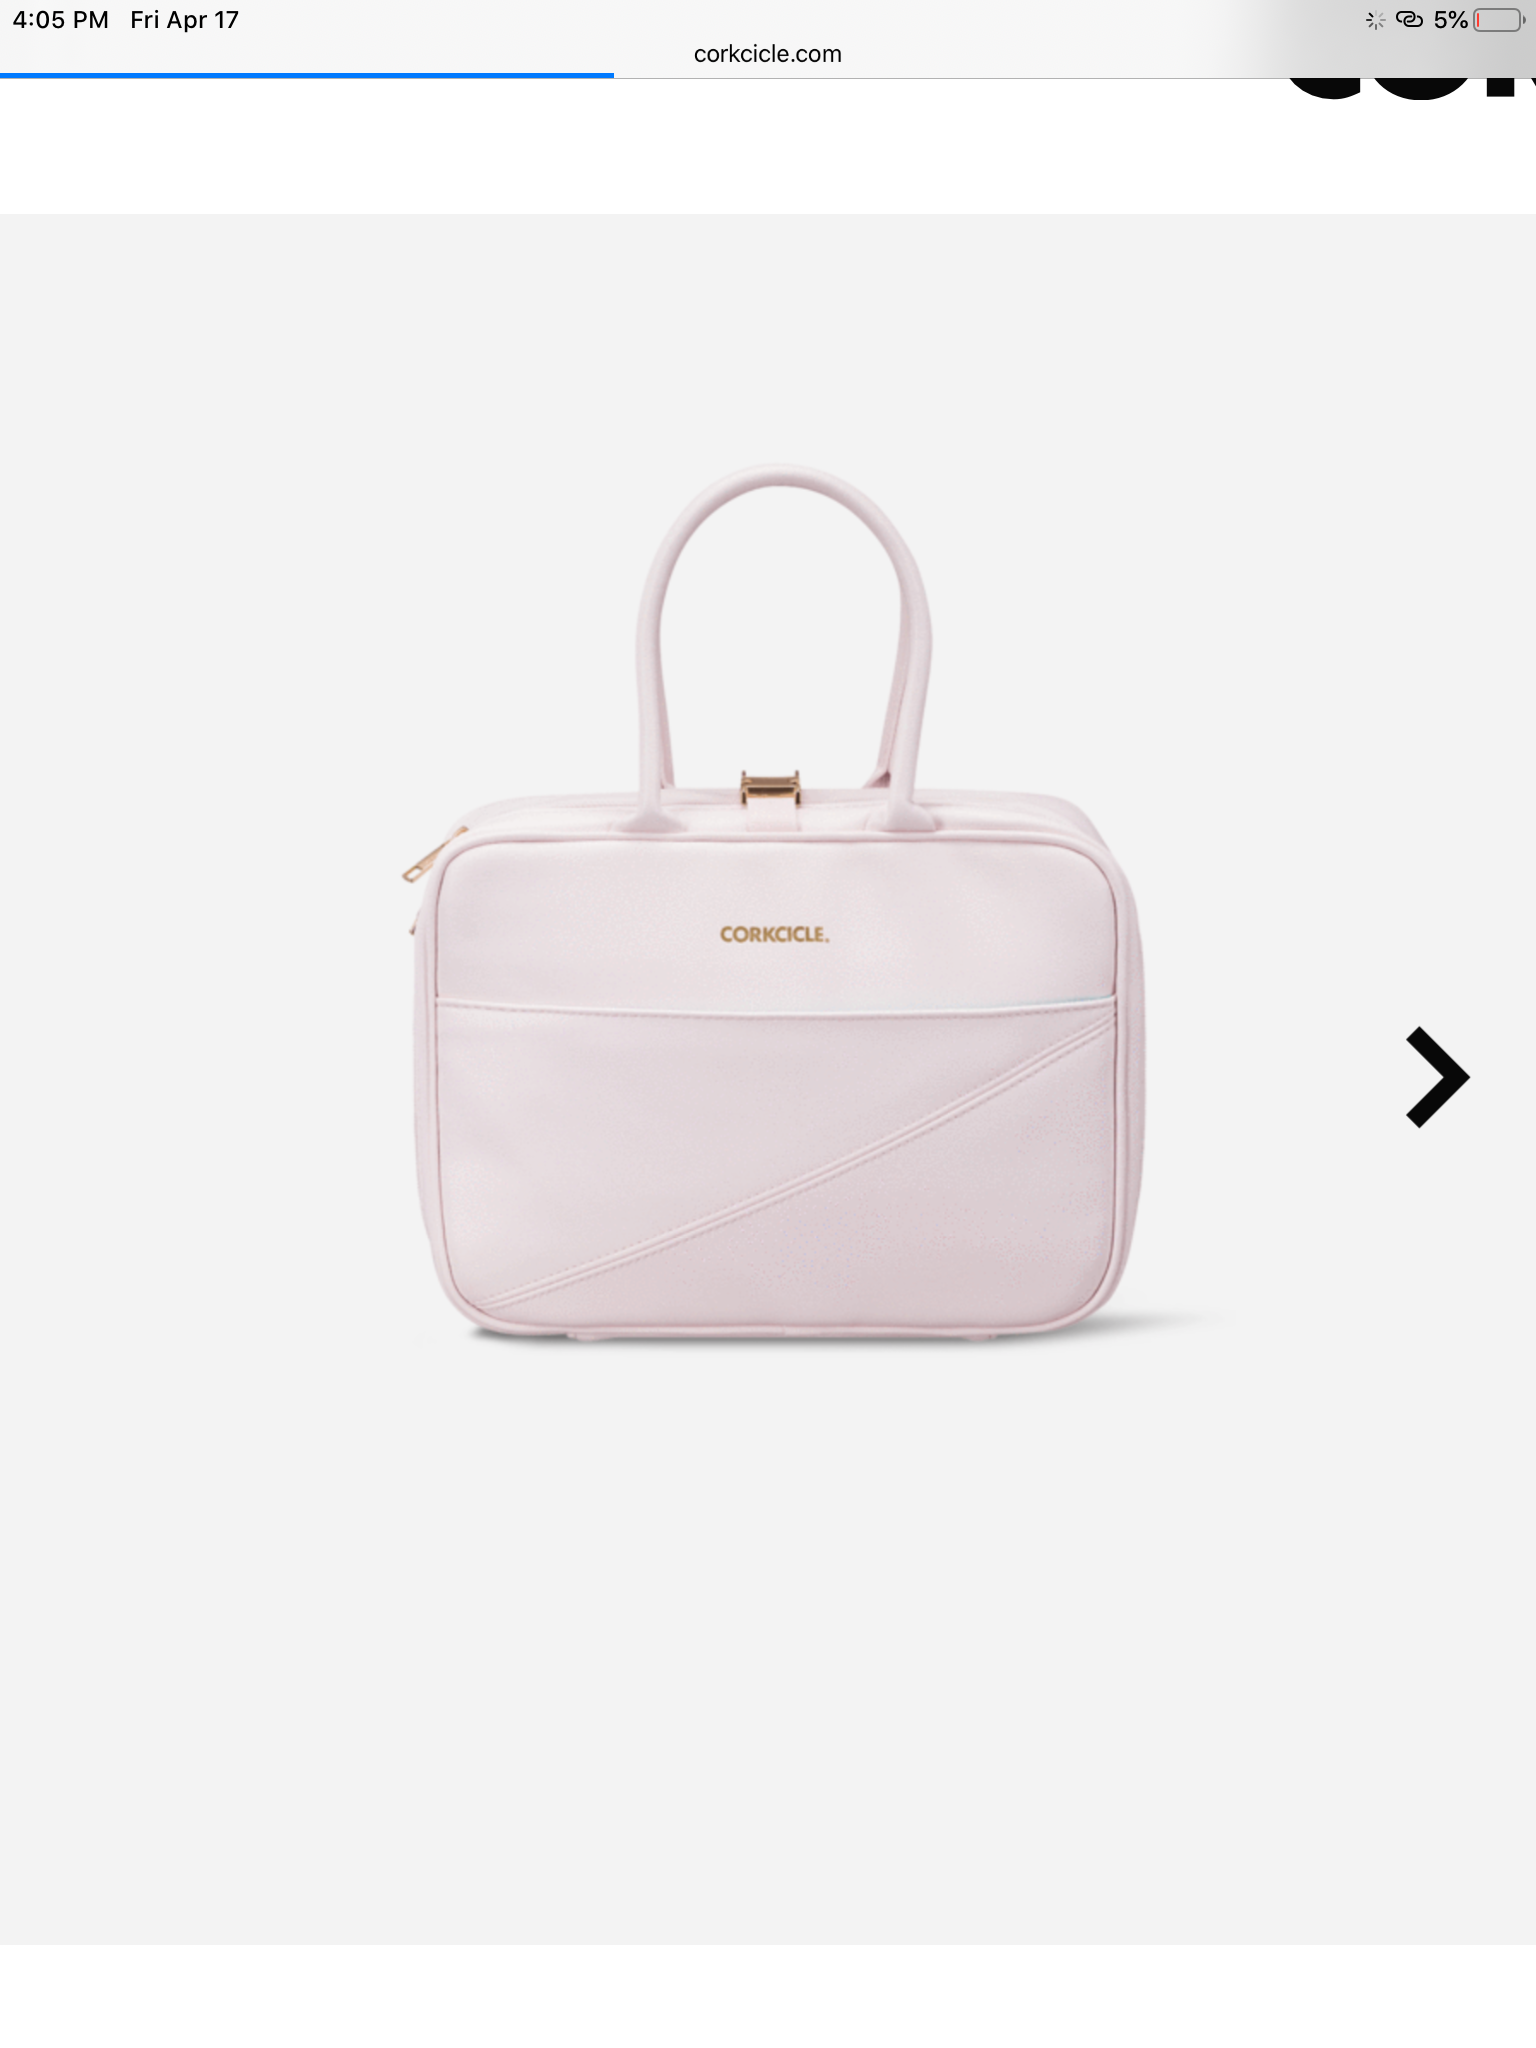 Corkcicle pink lunch tote